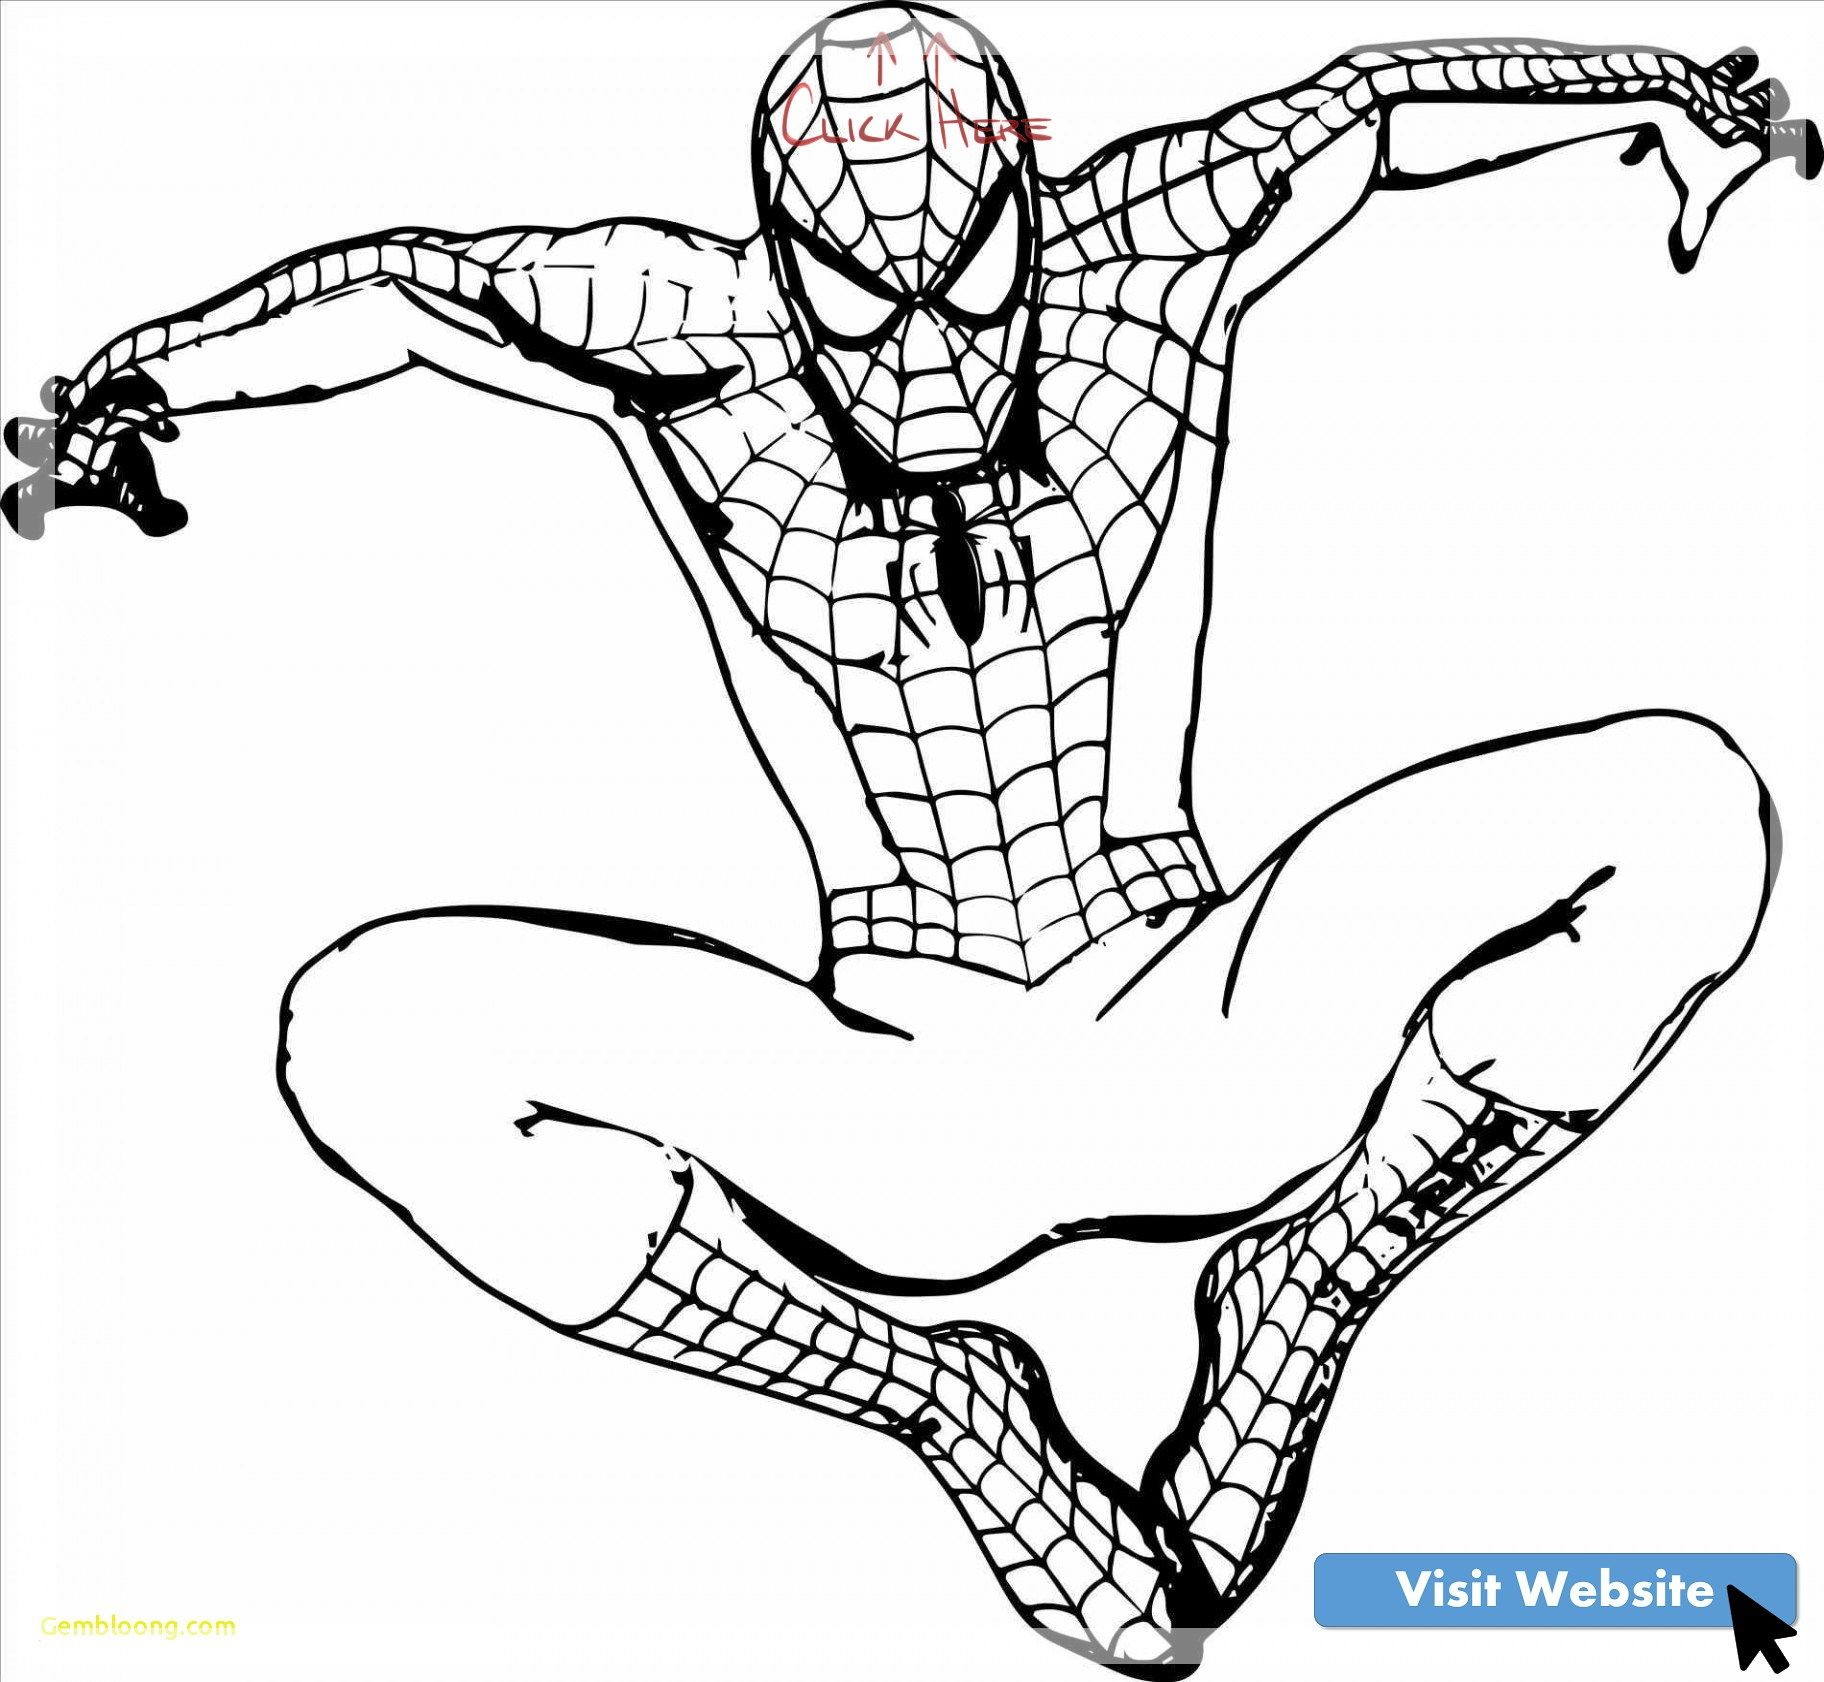 17 Free Easter Egg Coloring Pages For Kids Superhero Coloring Pages Superhero Coloring Spiderman Coloring